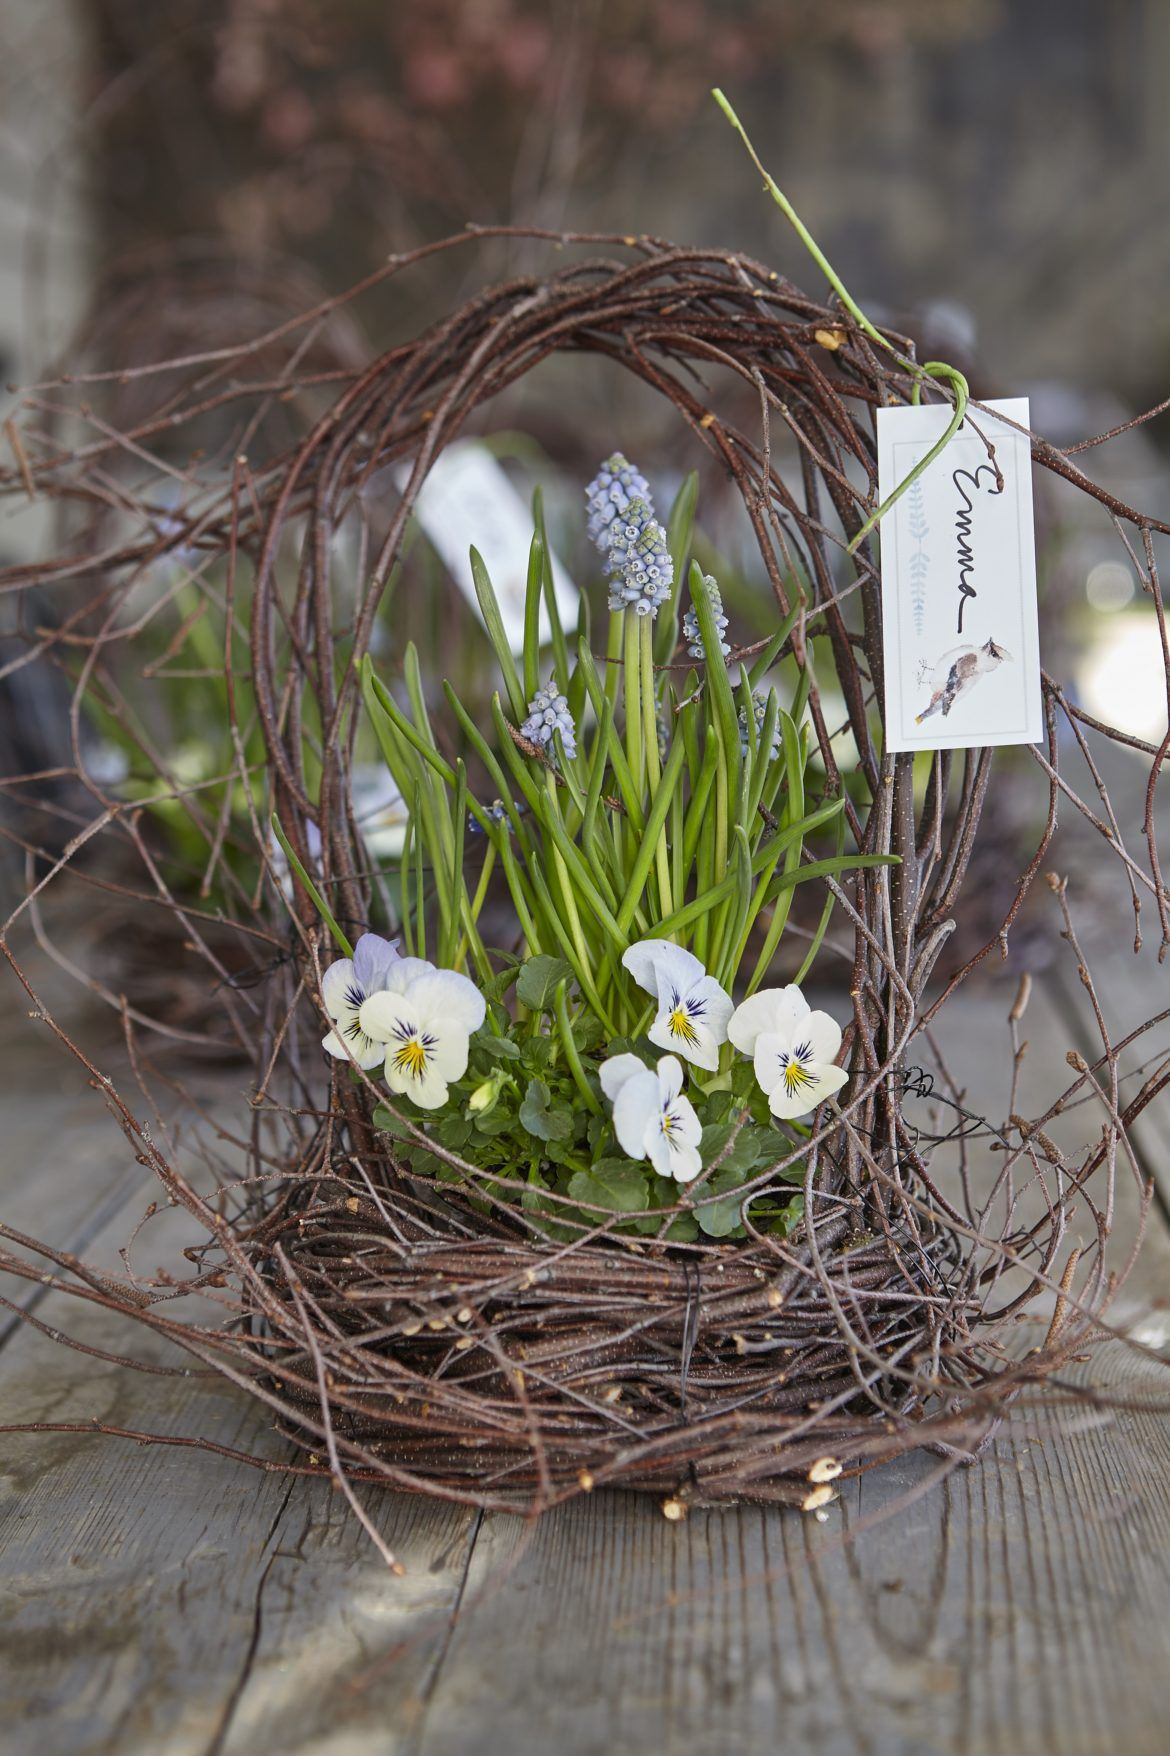 Nature S Easter Baskets Nora Murphy Country House Spring Basket Diy Easter Decorations Spring Baskets